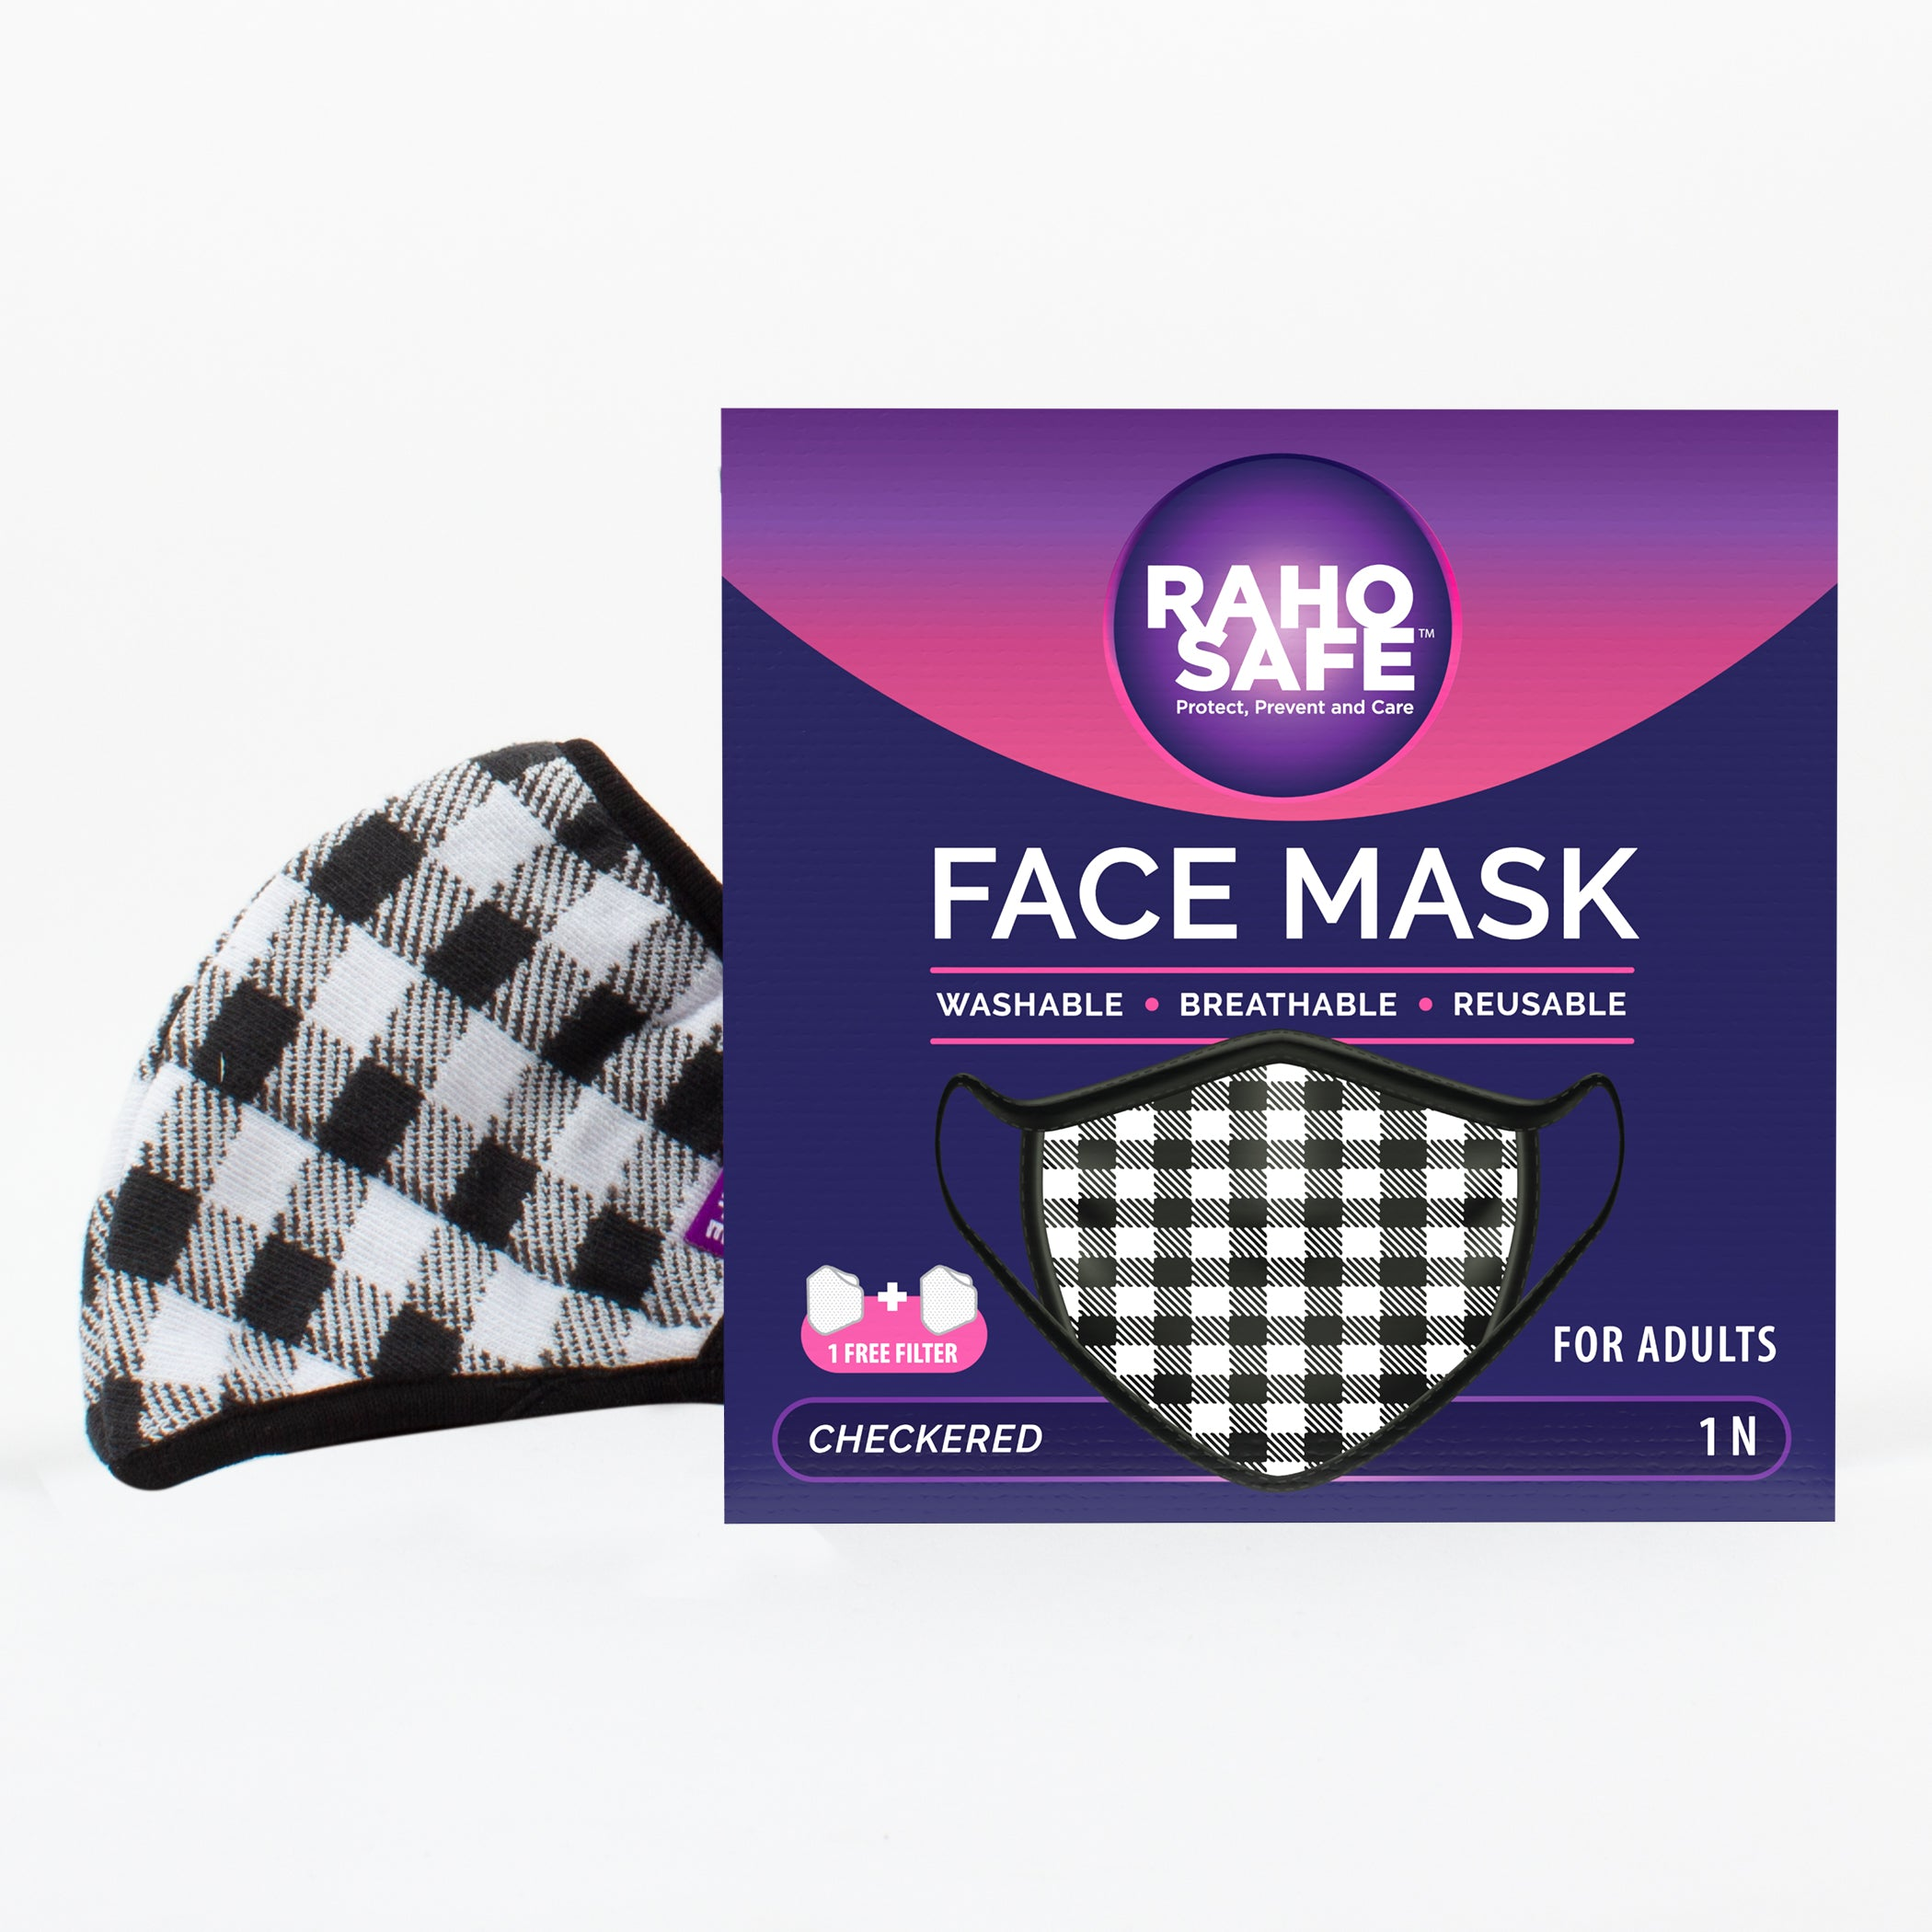 Checkered Face Mask for Adults